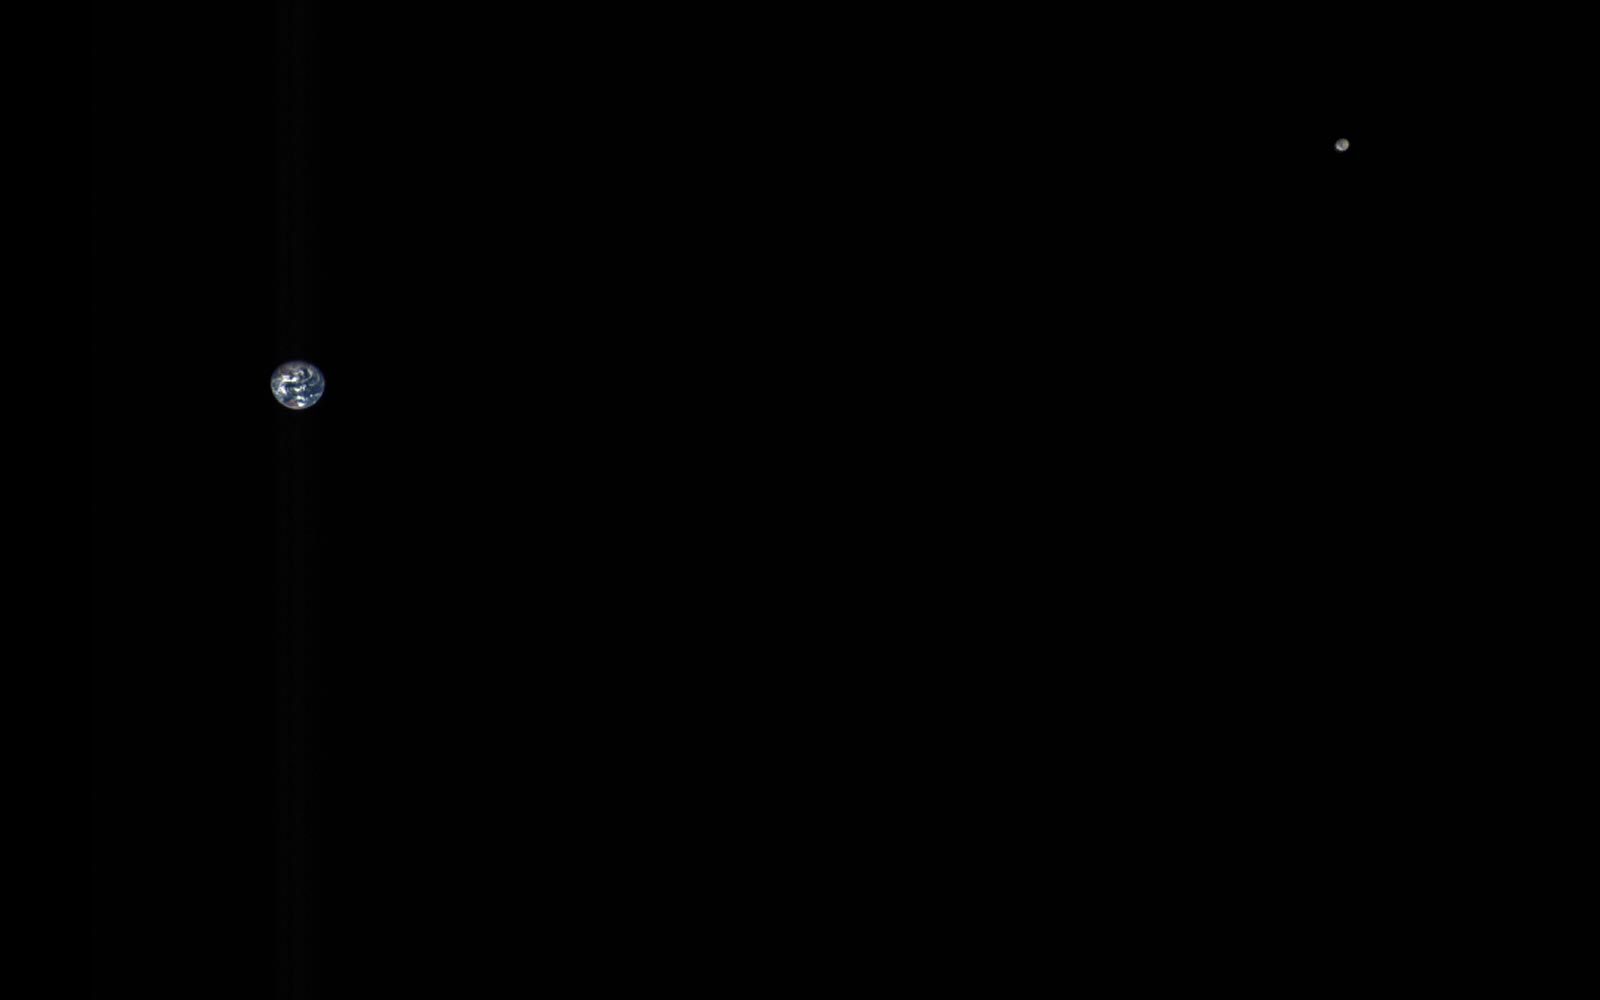 This composite image of the Earth and Moon is OSIRIS-REx's MapCam instrument data on October 2, 2017